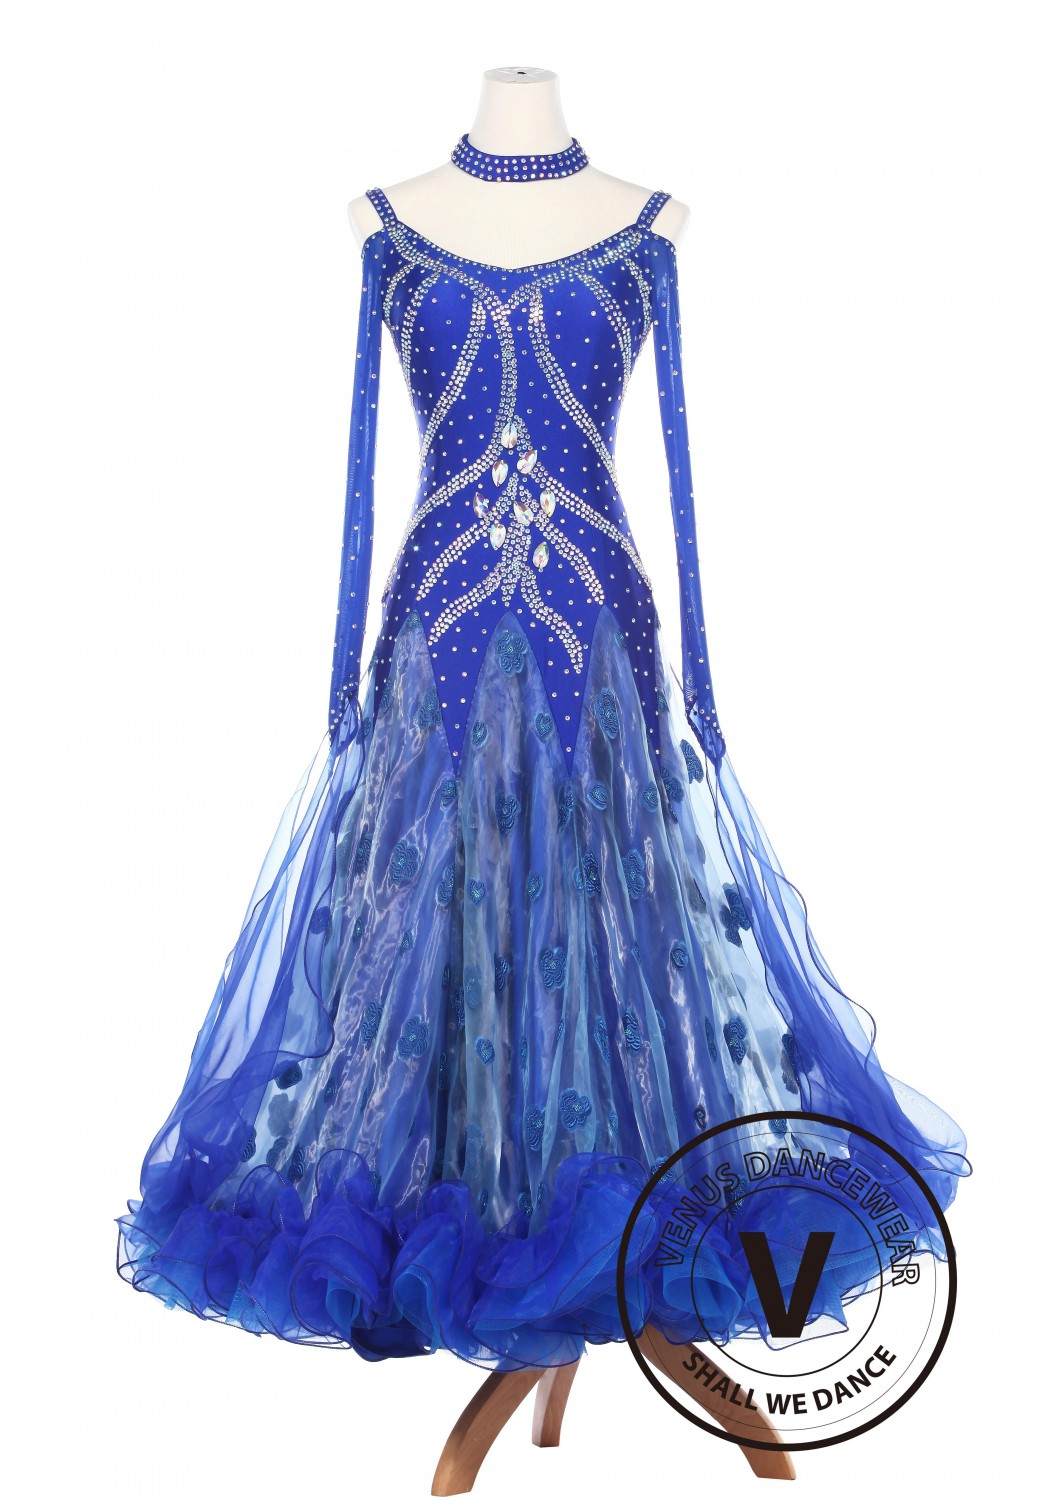 Water Fariy Smooth Foxtrot Watlz Ballroom Standard Competition Women Dress